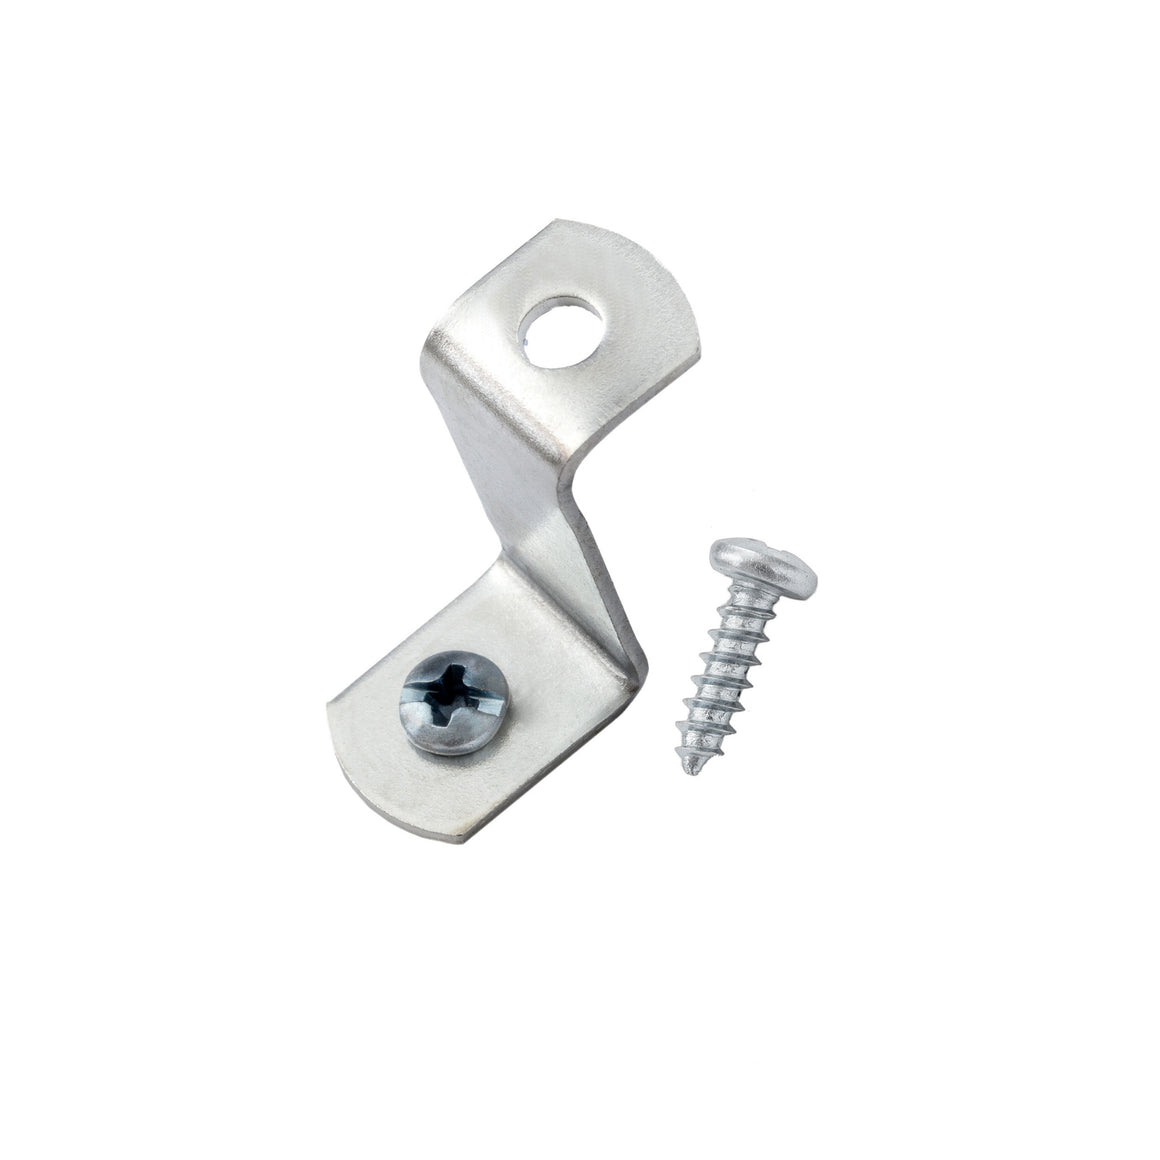 "1"" Offset Clips w/ Screws, Picture Hanging Hardware"